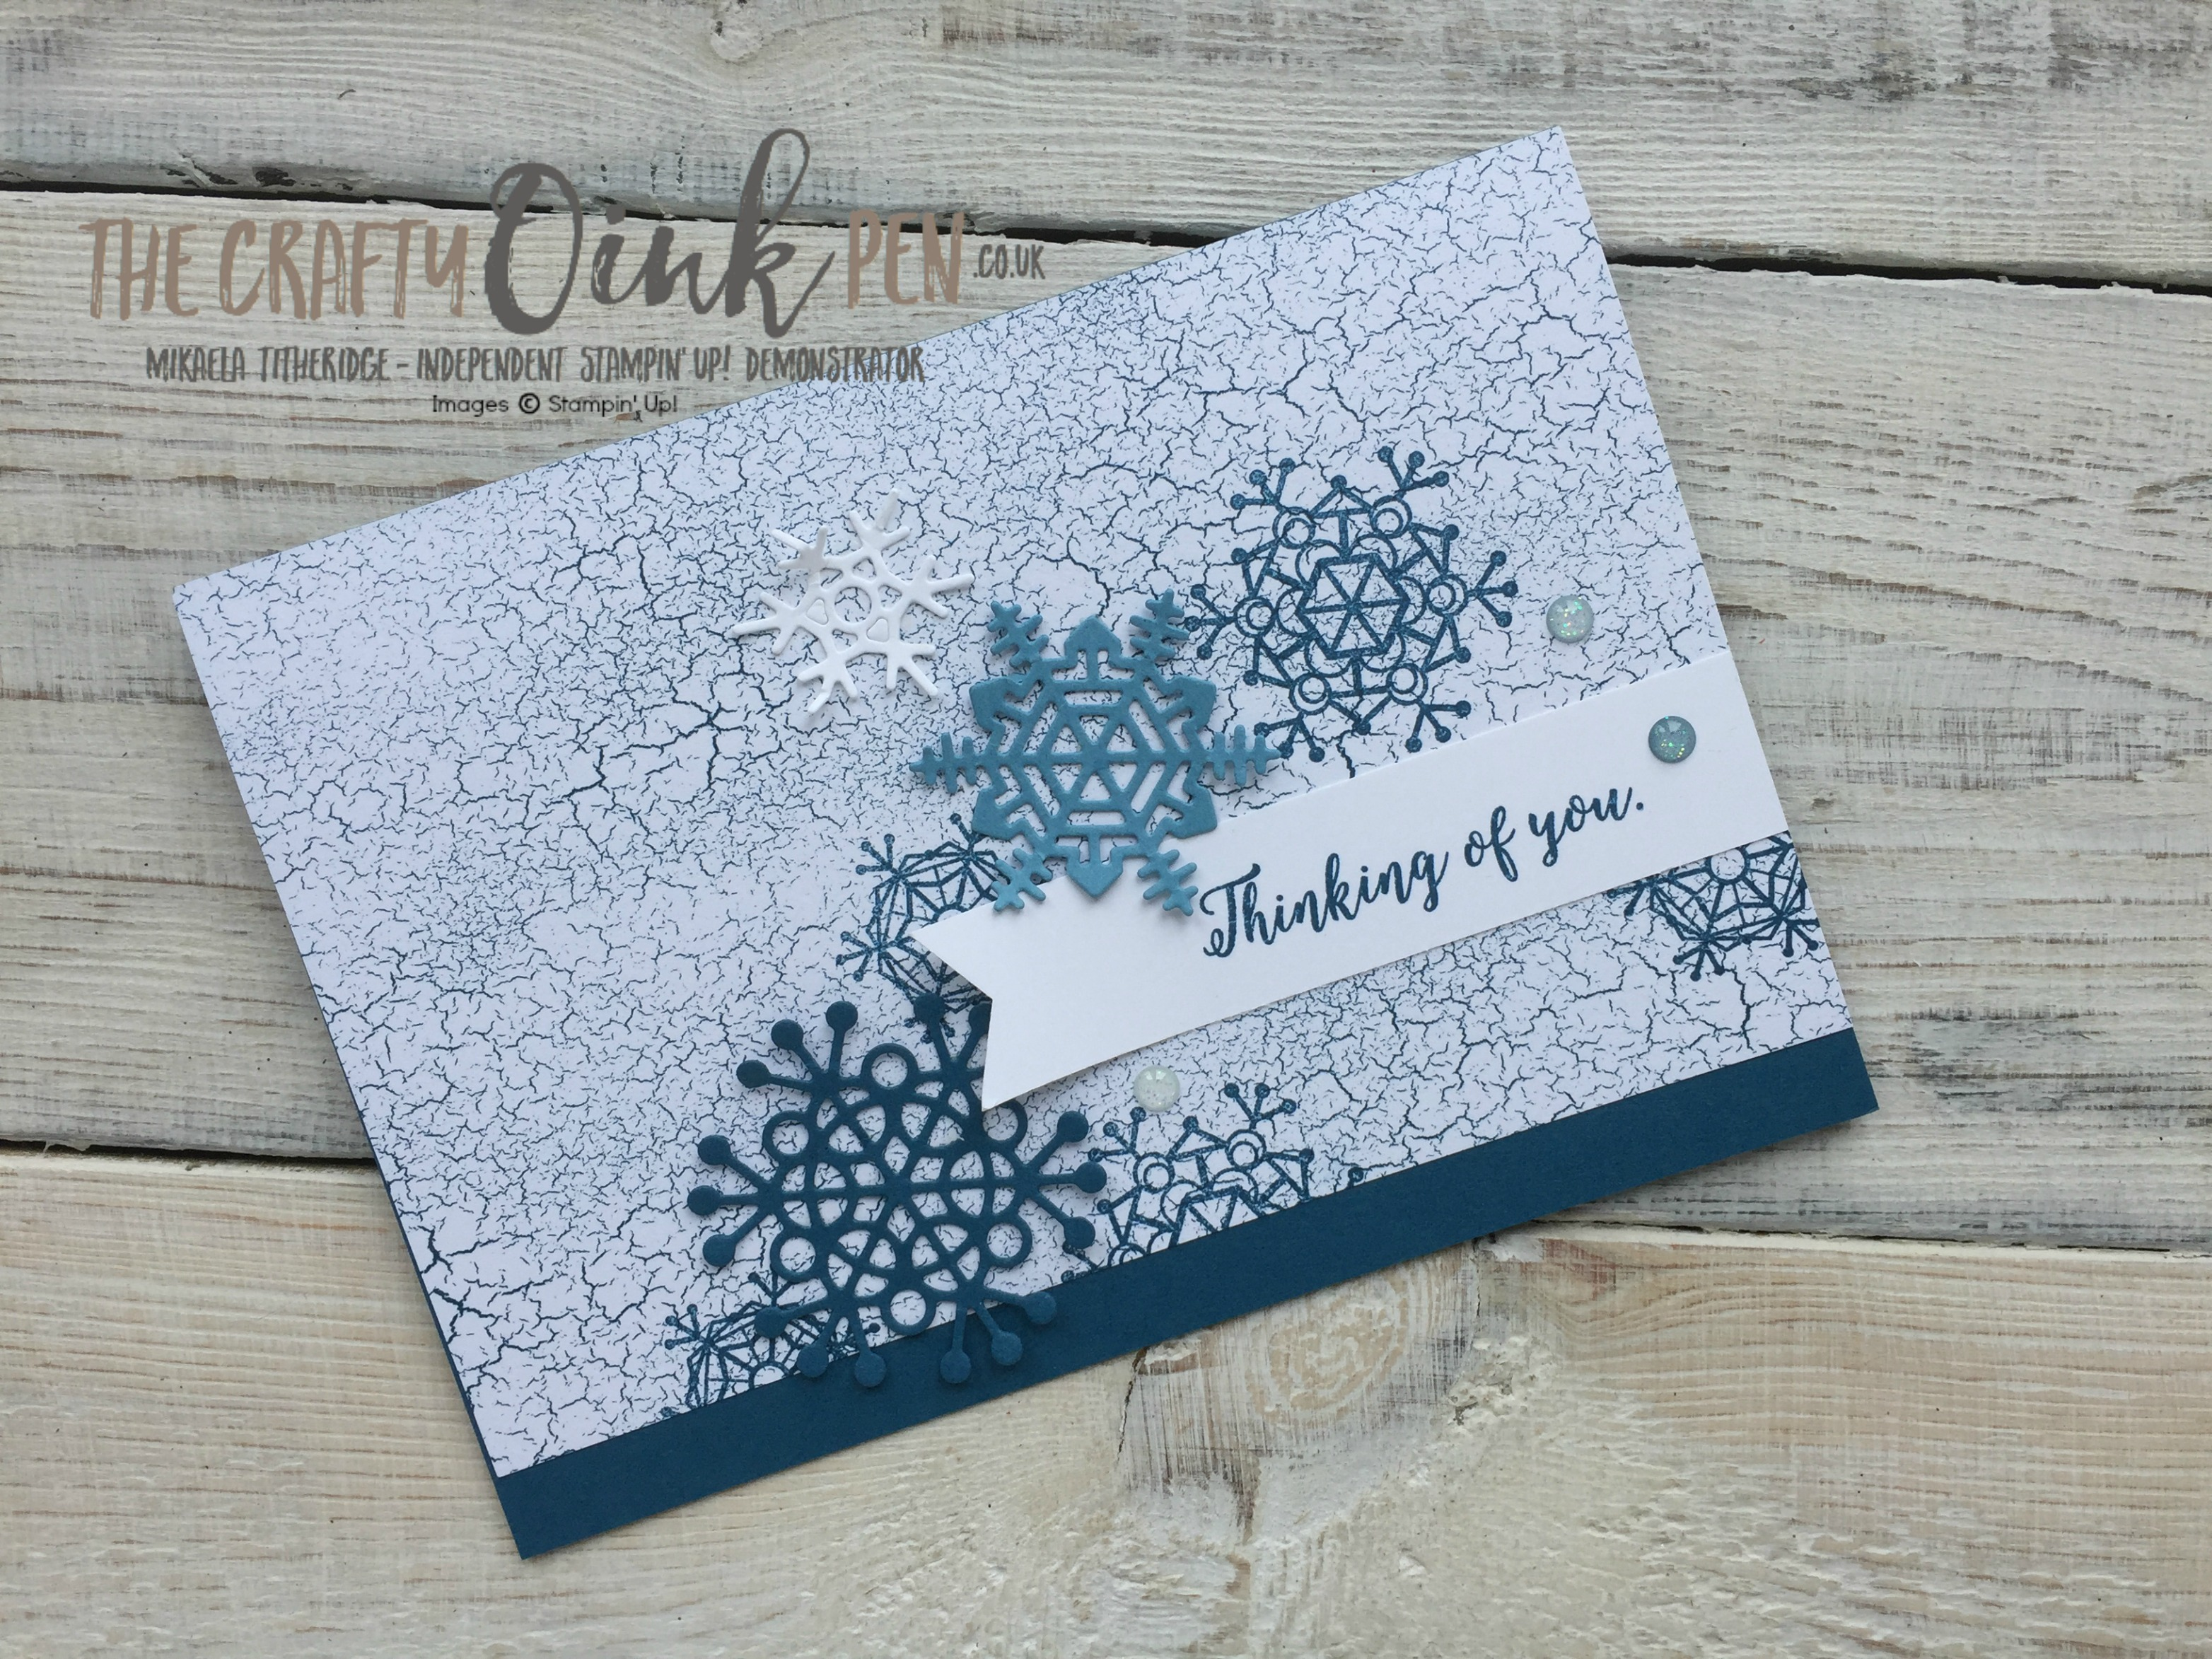 Color Theory for a Colourful Winter Season by Mikaela Titheridge, The Crafty oINK Pen, UK Stampin' Up! Demo